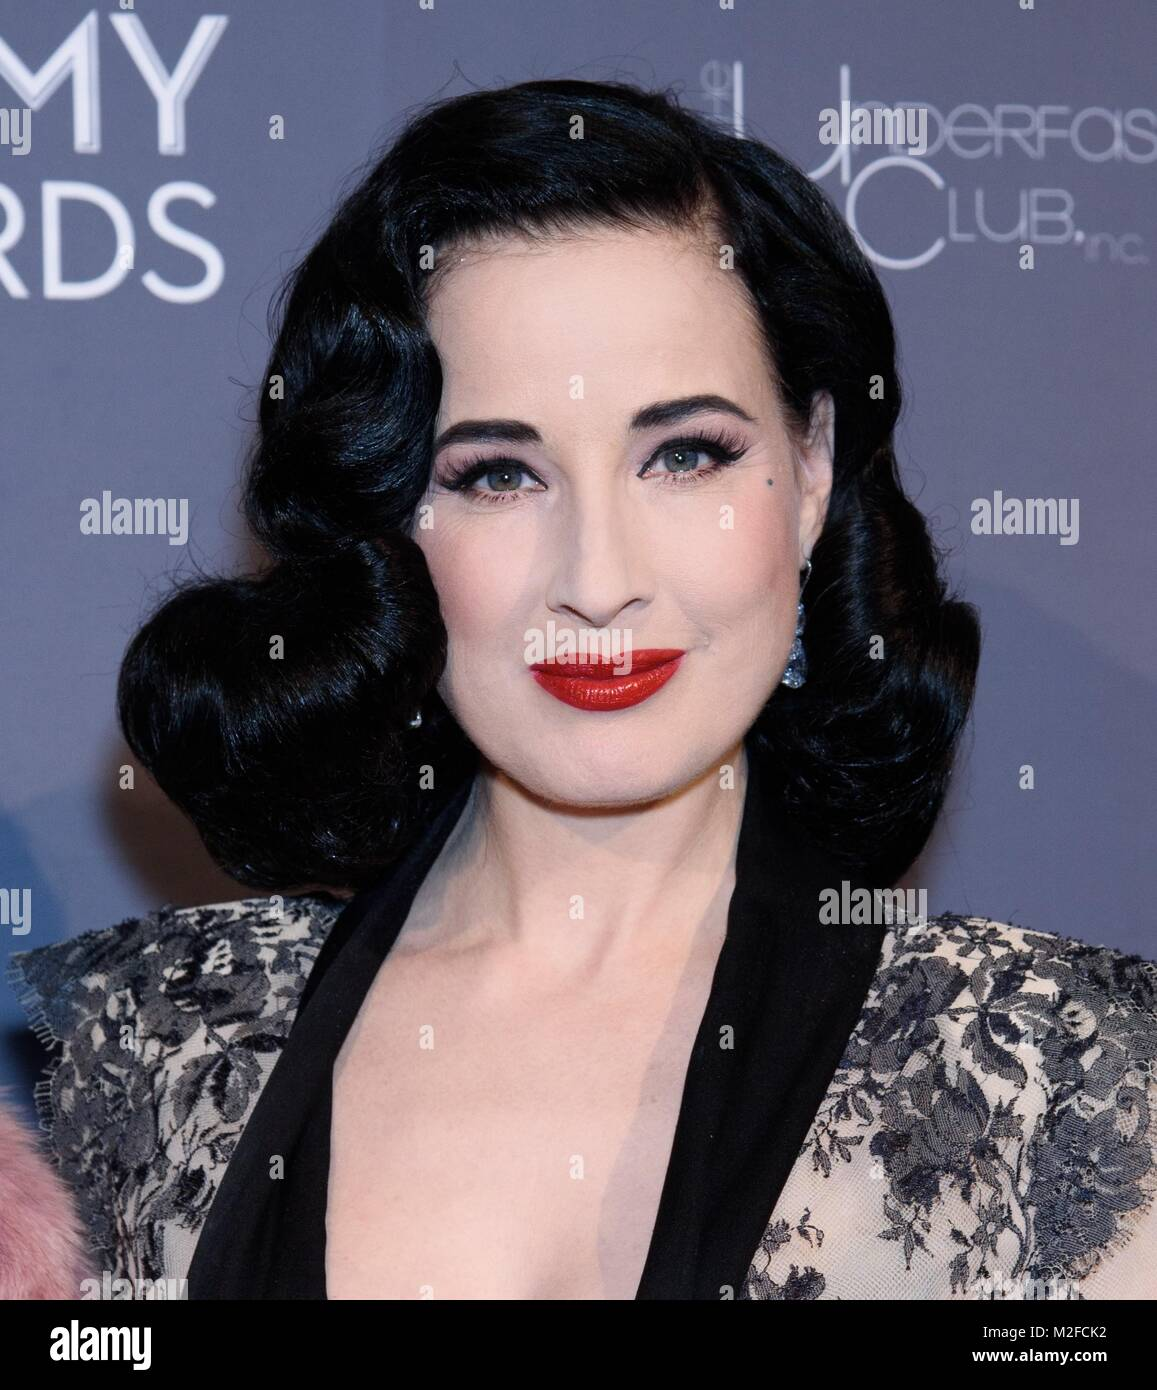 c9b575d1df53 Dita Von Teese at arrivals for 2018 Femmy Awards Gala